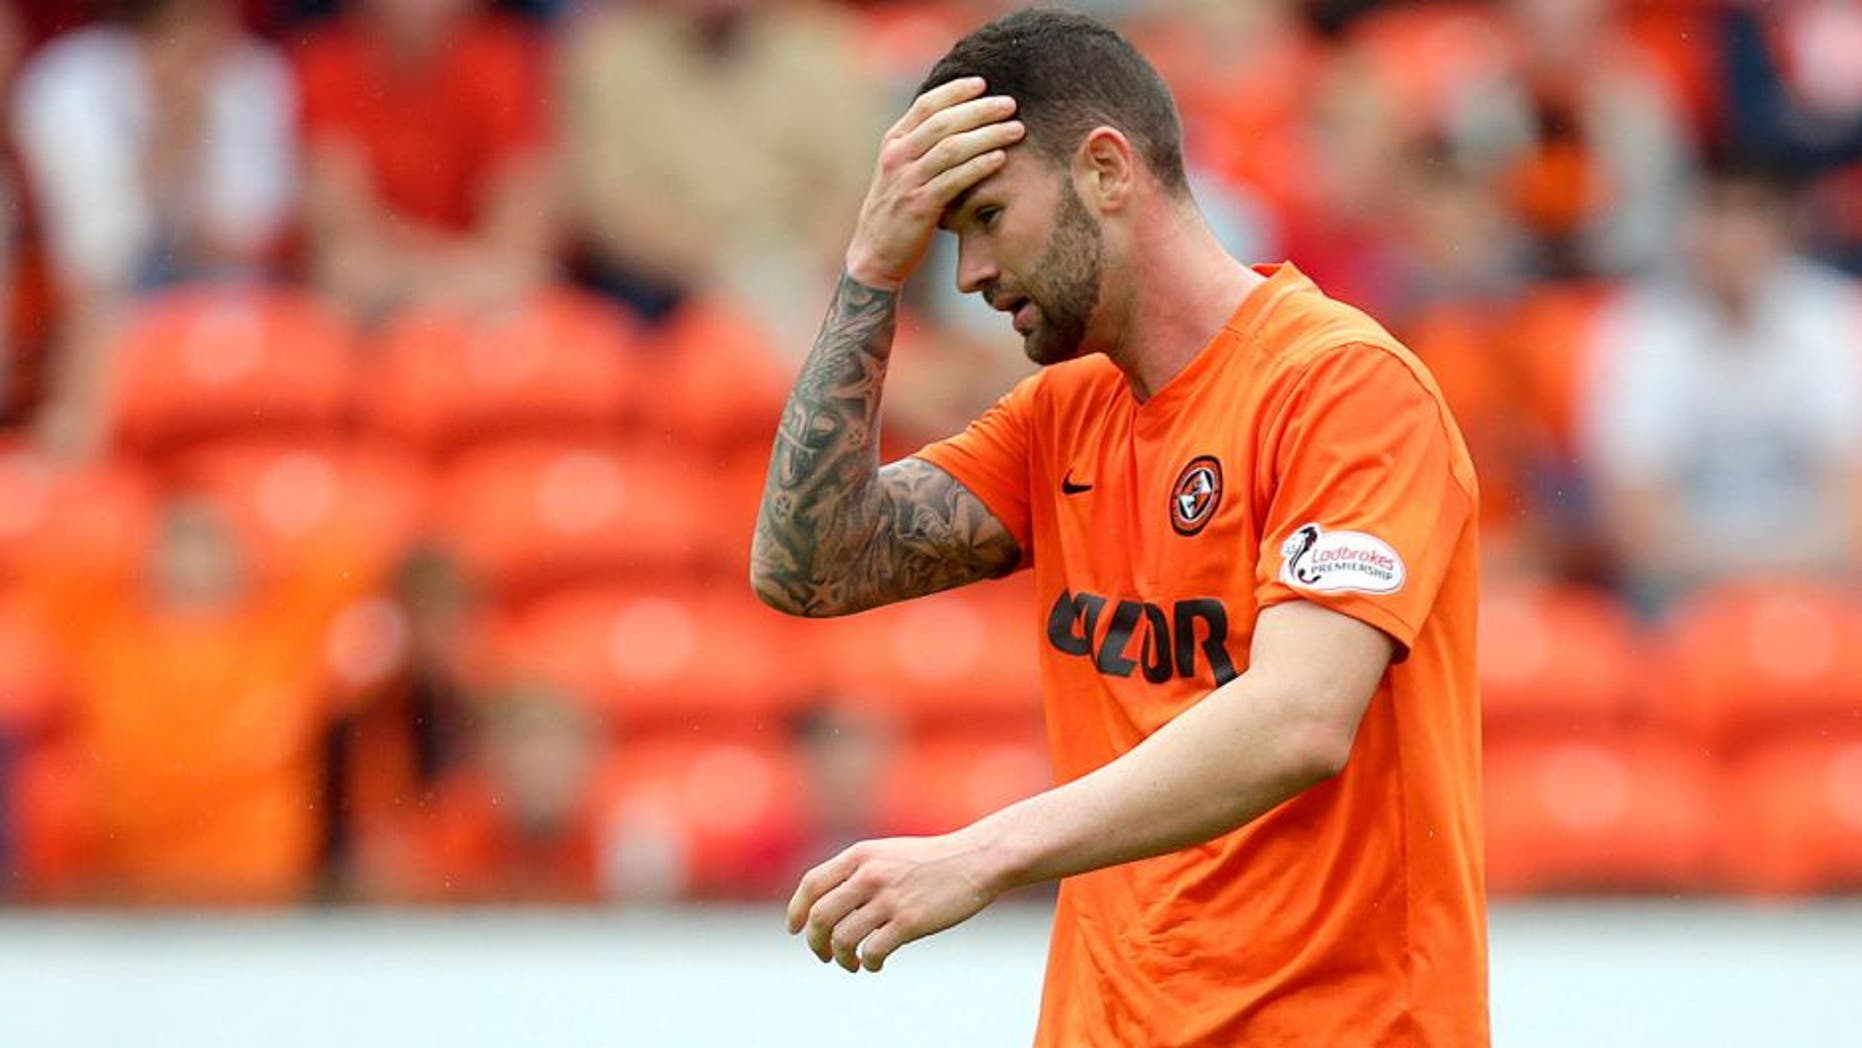 """Football - Dundee United v Celtic - Ladbrokes Scottish Premiership - Tannadice Park - 22/8/15 Dundee United's Mark Durnan looks dejected after scoring an own goal for Celtic Action Images via Reuters / Graham Stuart Livepic EDITORIAL USE ONLY. No use with unauthorized audio, video, data, fixture lists, club/league logos or """"live"""" services. Online in-match use limited to 45 images, no video emulation. No use in betting, games or single club/league/player publications. Please contact your account representative for further details."""